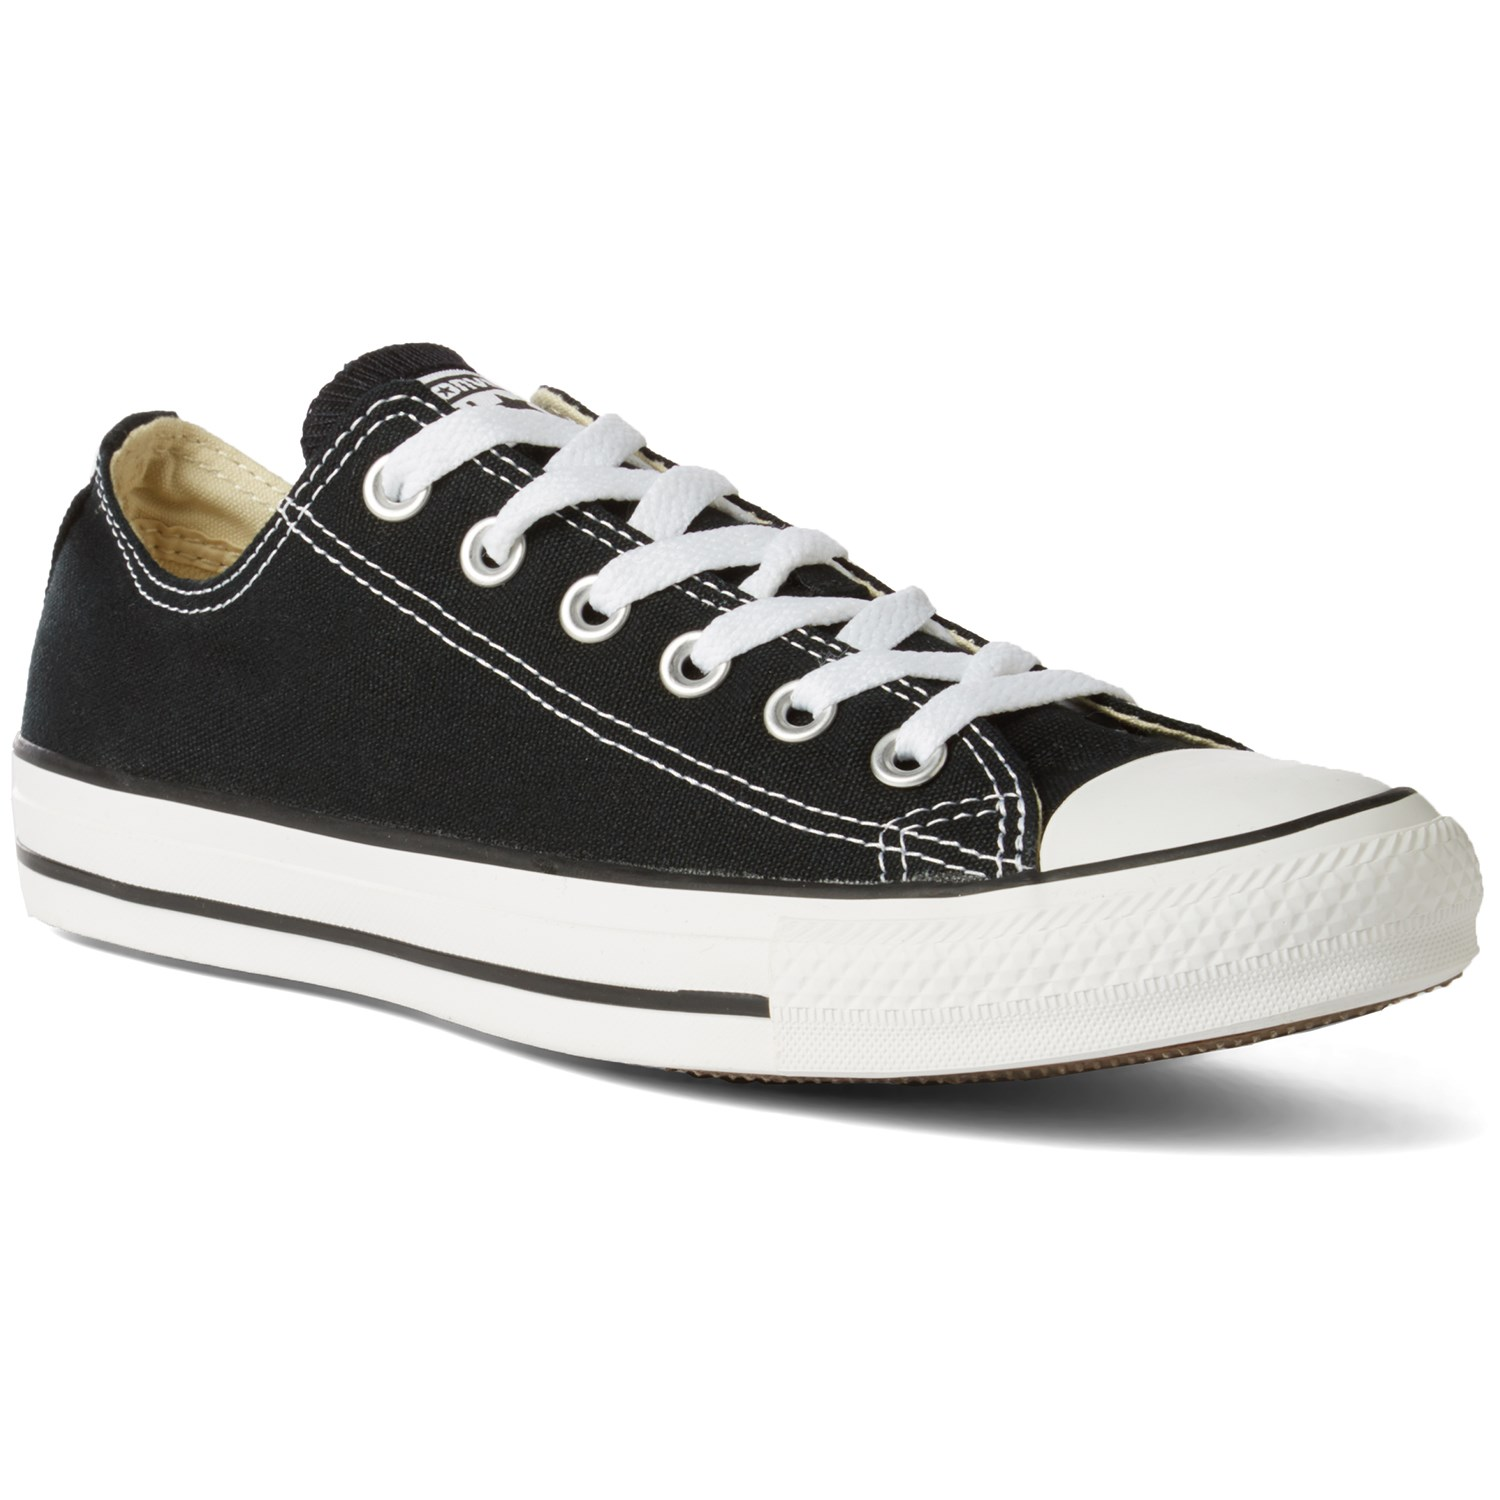 4471d88ed342 Converse Chuck Taylor All Star Low Shoes - Women s